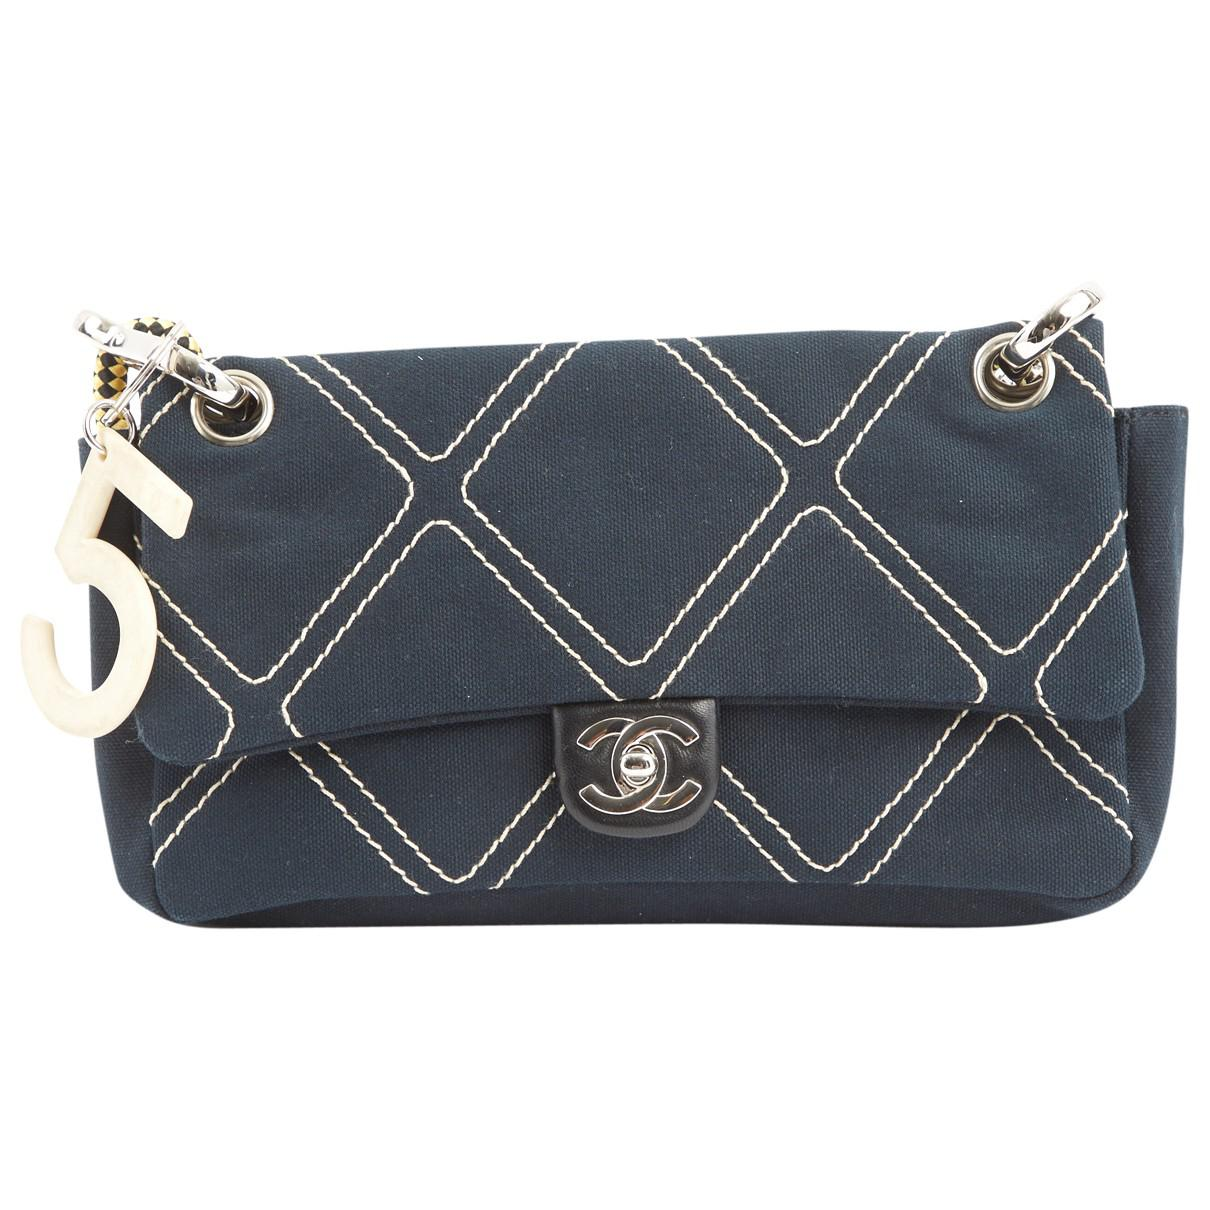 Chanel Pre-owned - Cloth clutch bag QZgFecU4